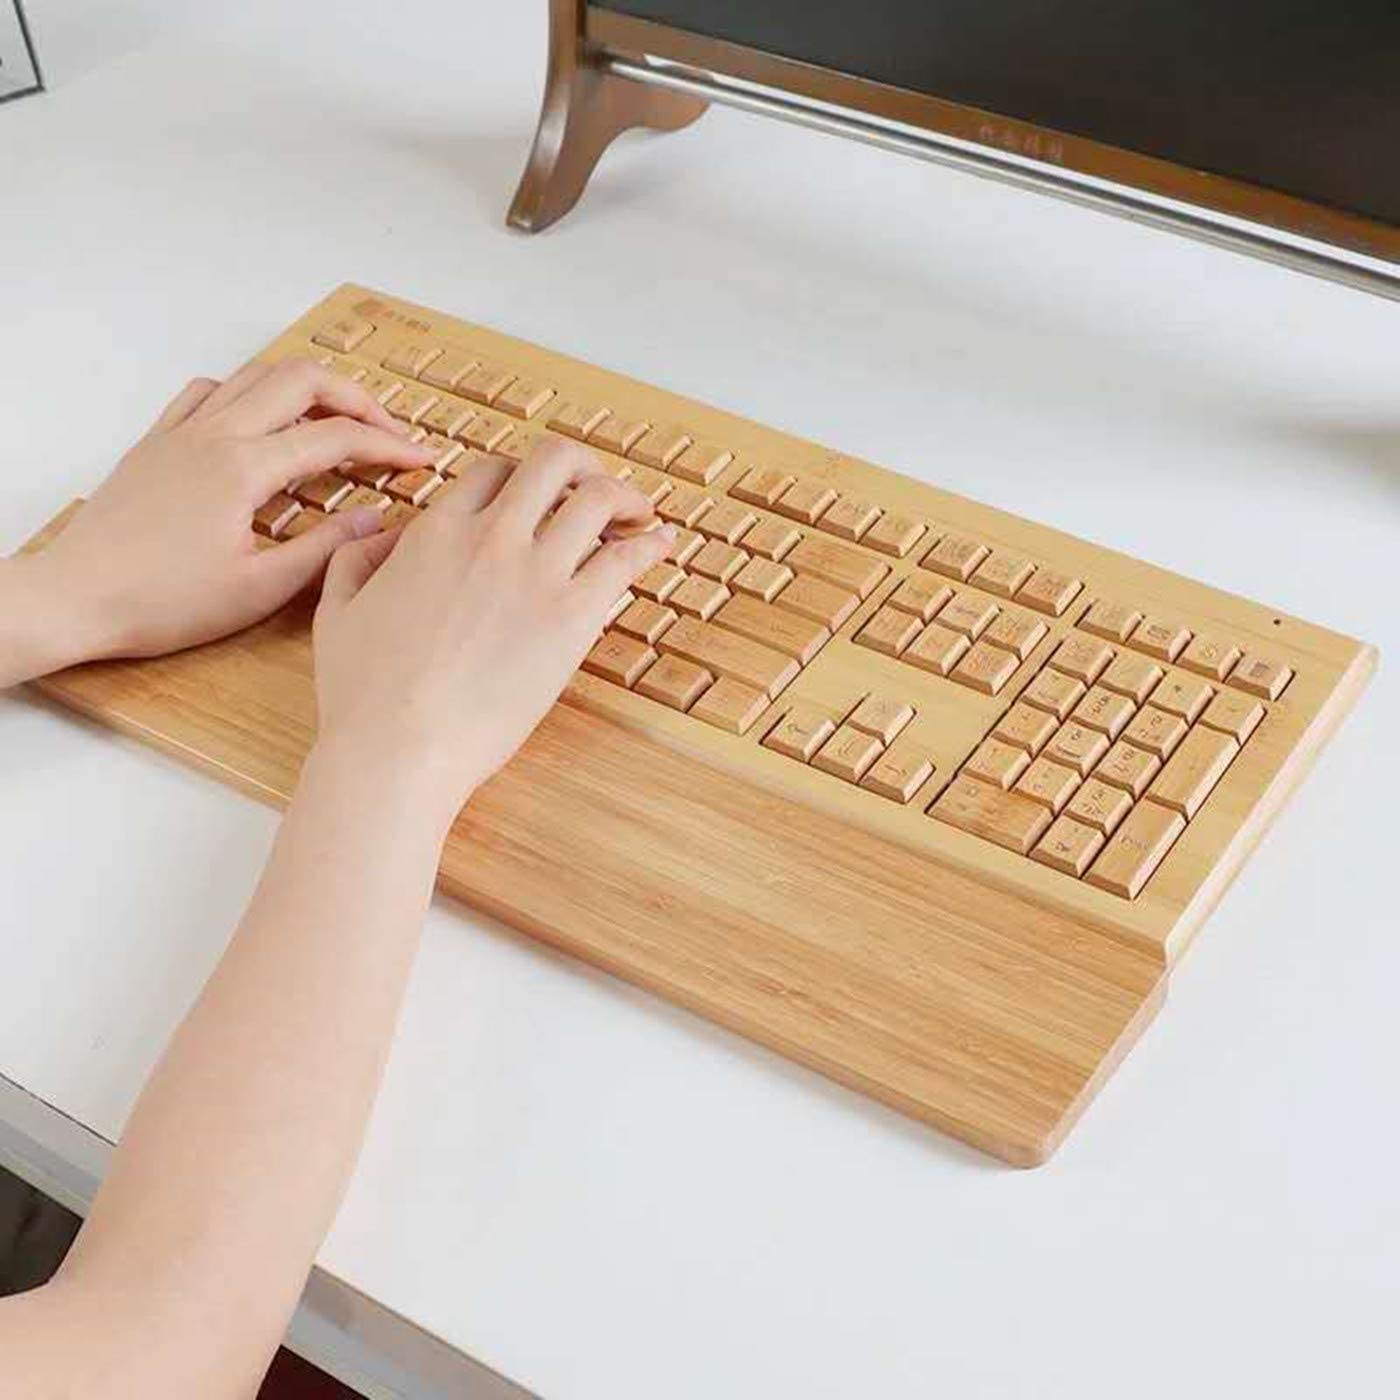 Bamboo Painted Keyboard WristPalm Support for office or Gaming  use,